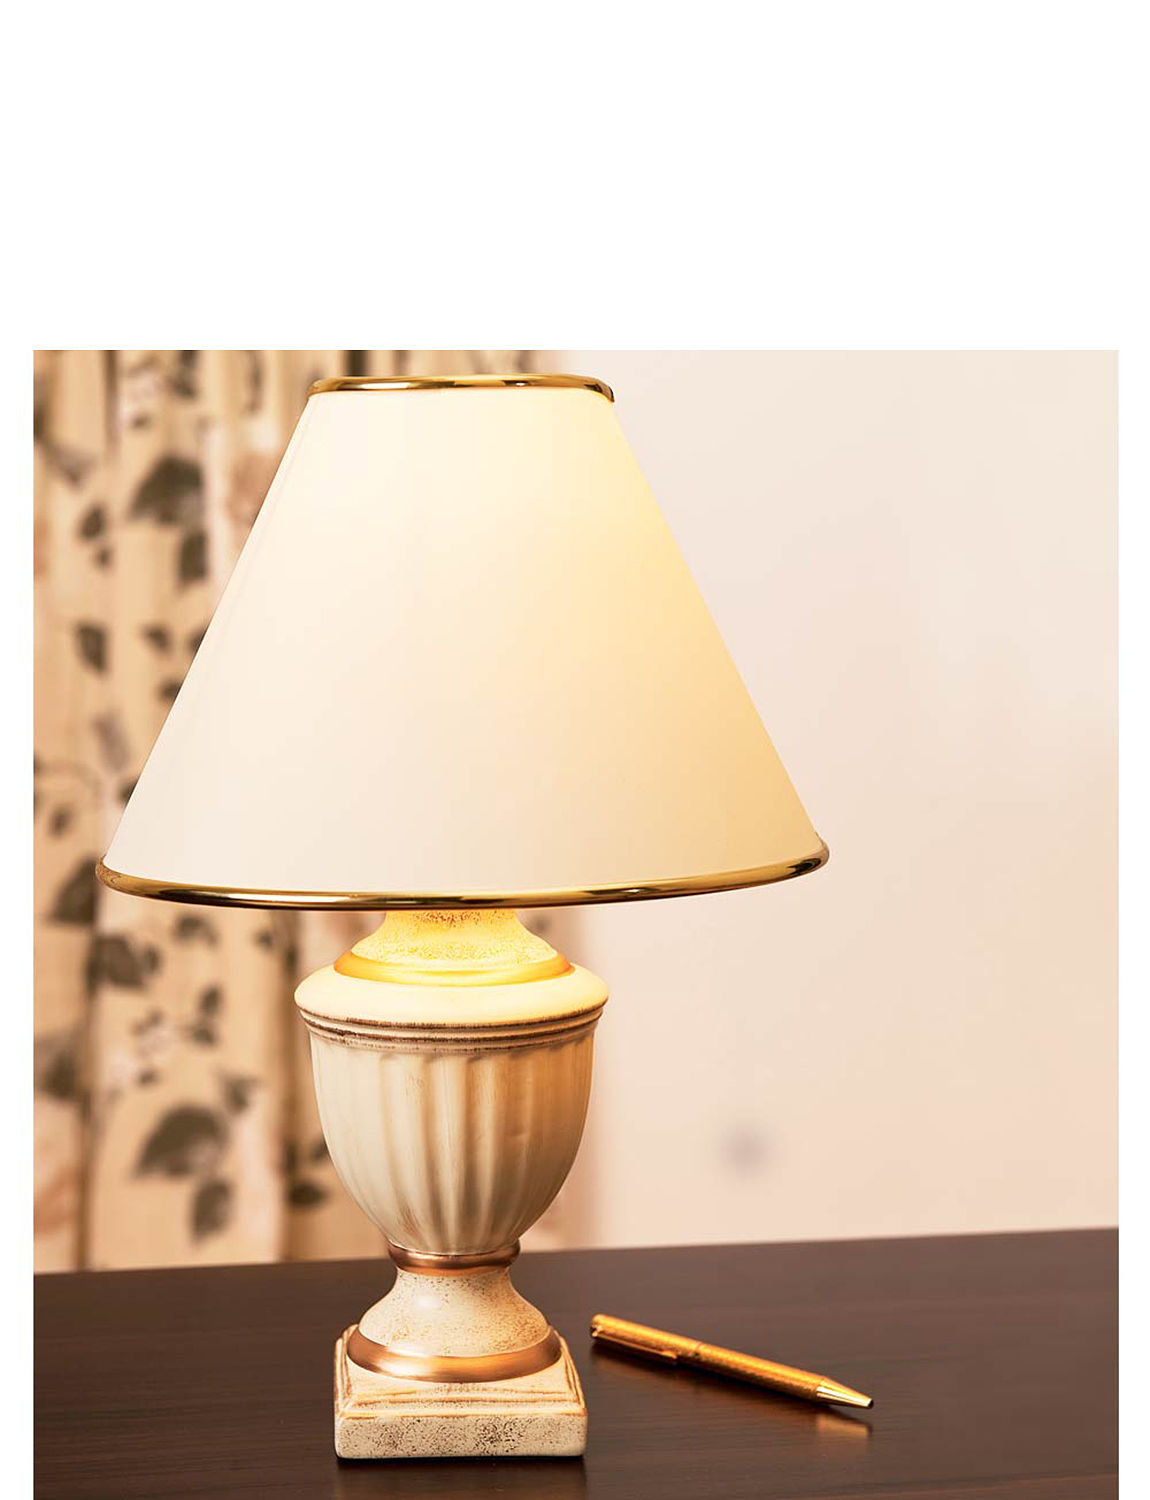 Original All Products  Lighting  Lamps  Table Lamps